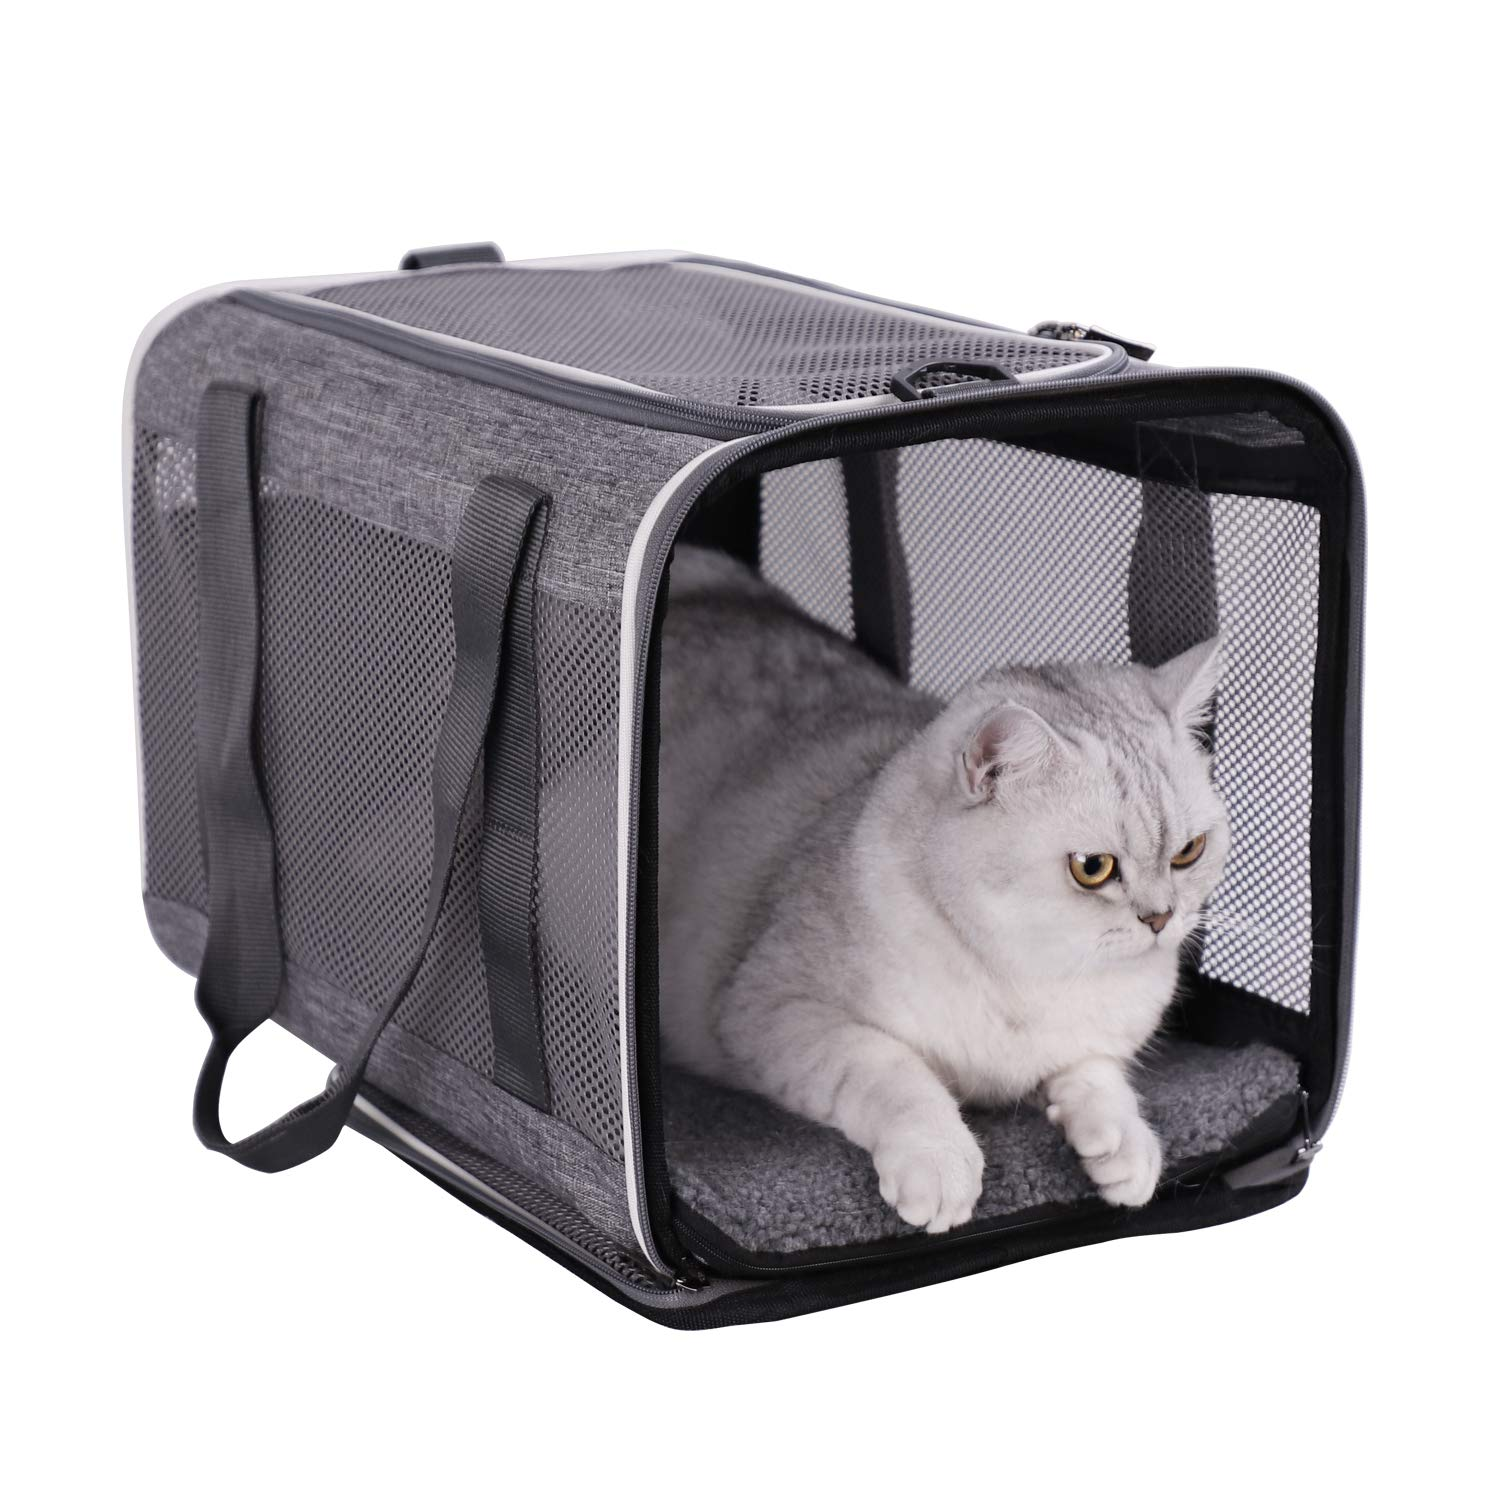 petisfam Top Load Pet Carrier for Large and Medium Cats, Small Dogs. Easy to get cat in, Carry, Storage, Clean and…